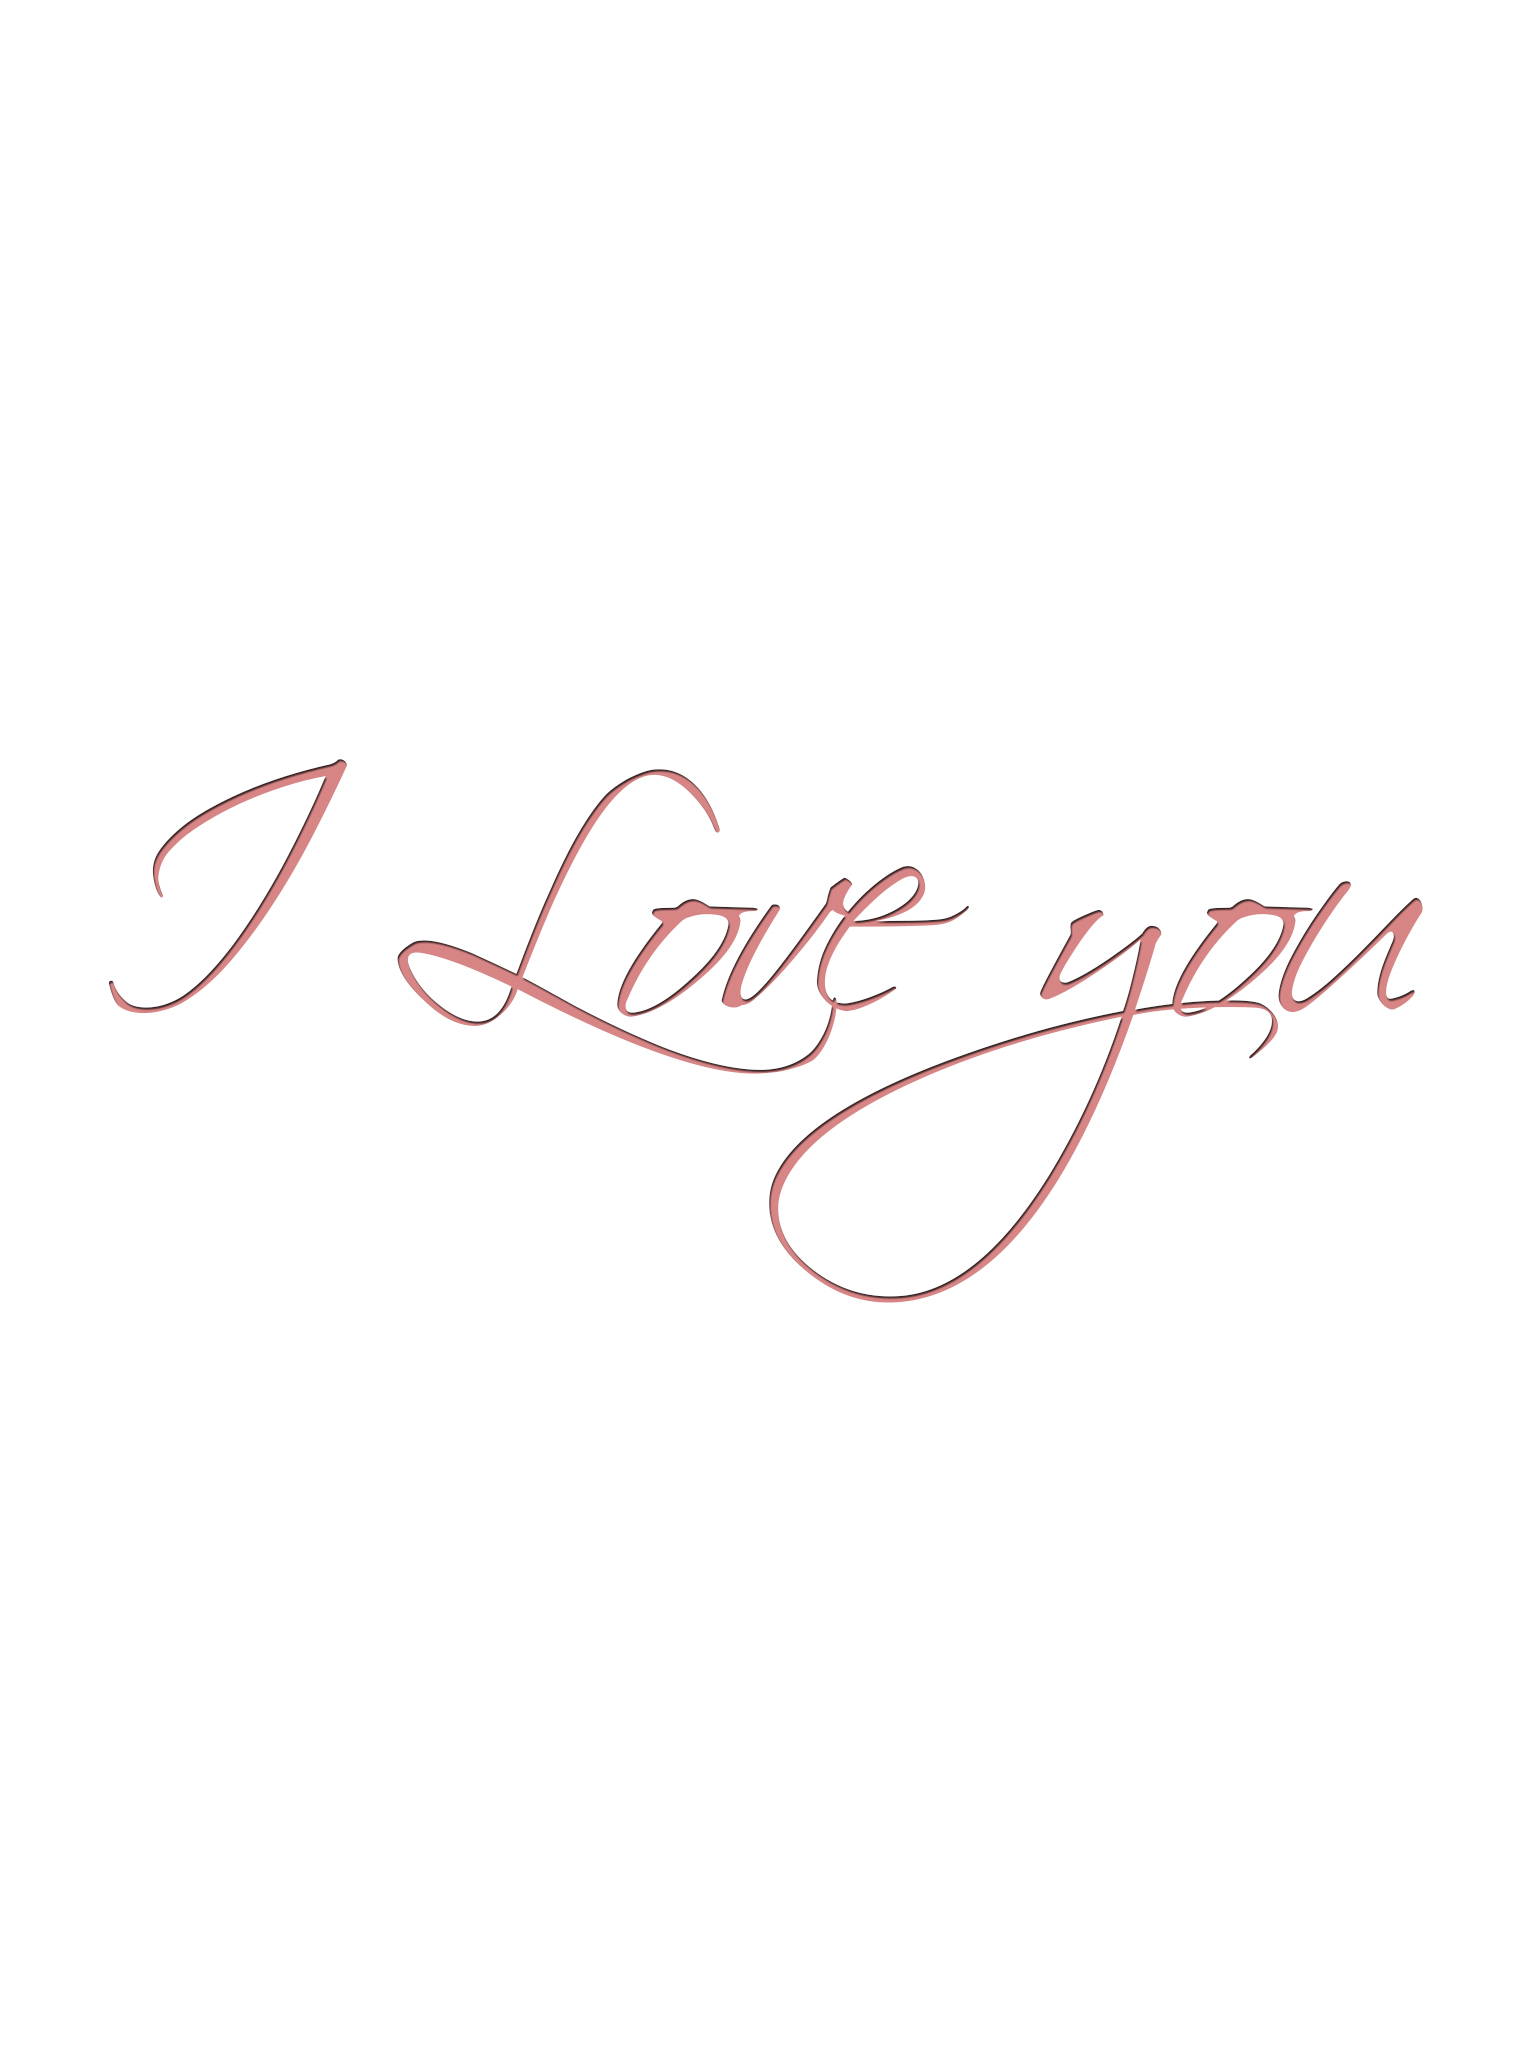 I Love you ipad 3 wallpaper